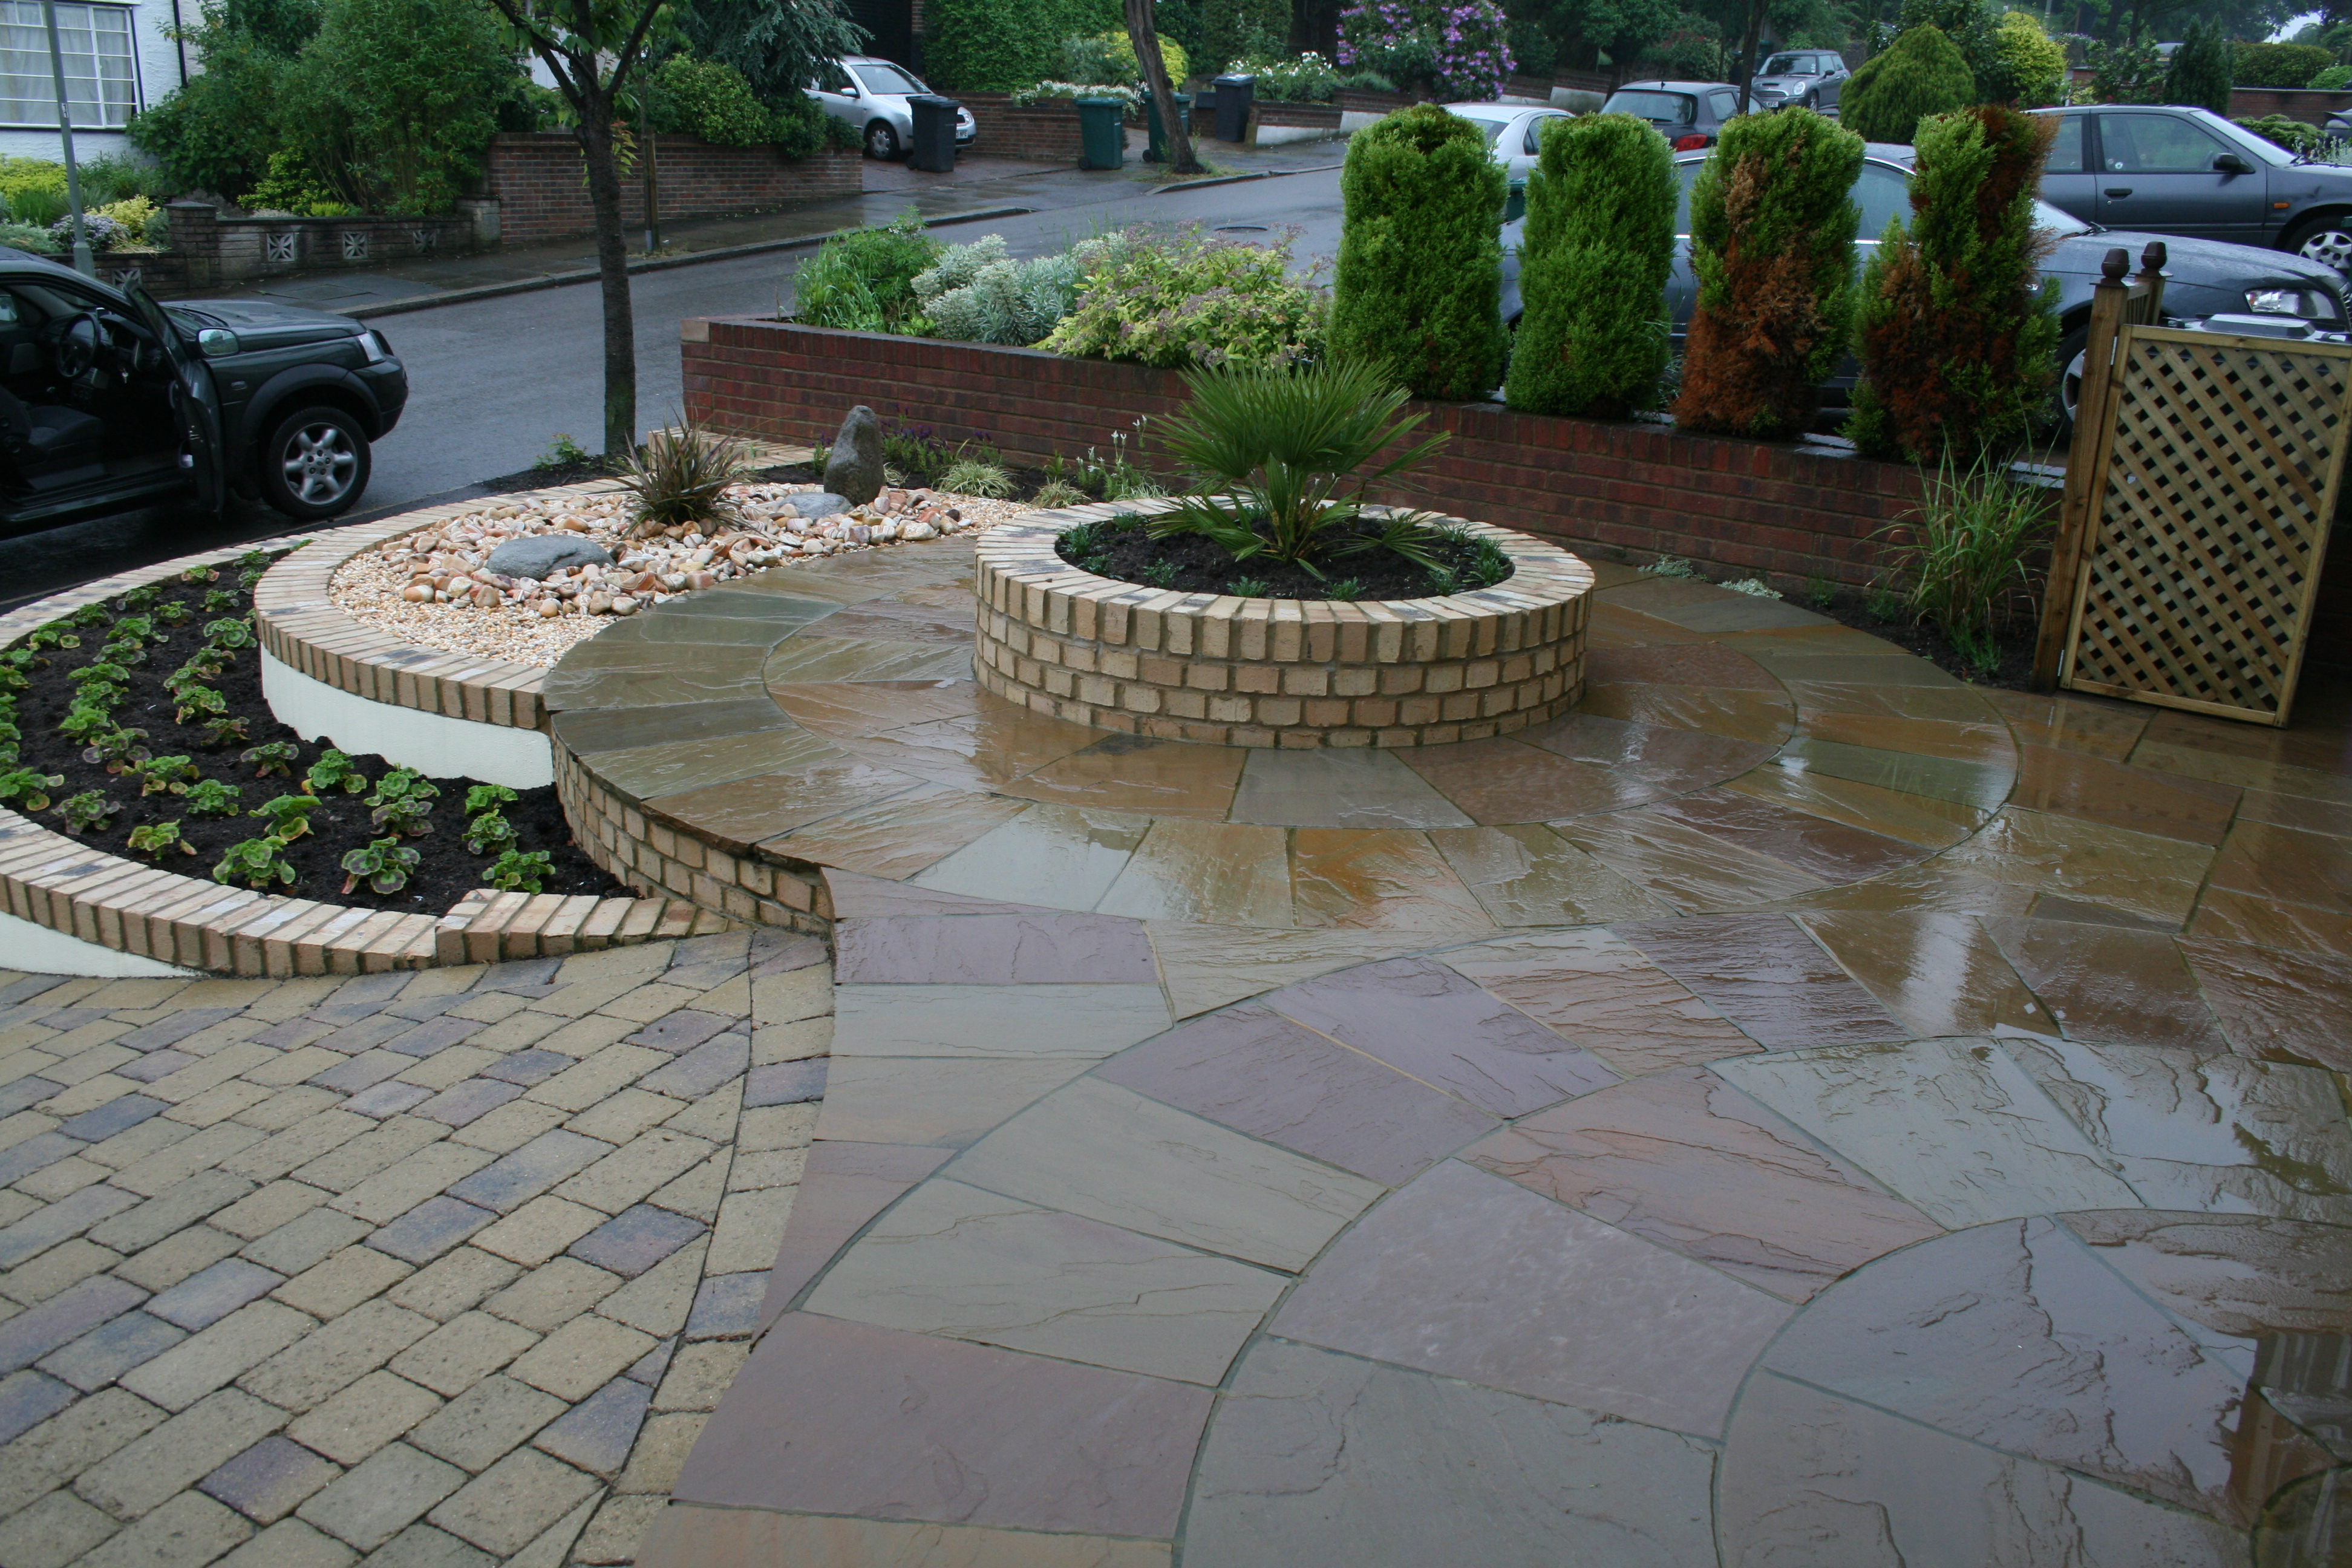 Patio  West Essex Landscapes. Patio World Plus. Stone Patio With Steps. Patio Home Furniture. Patio Builders Leicester. Outdoor Patio Bar Ideas. Patio Pavers Steps. Patio Design By Jas Inc Rensselaer. Outdoor Patio Concrete